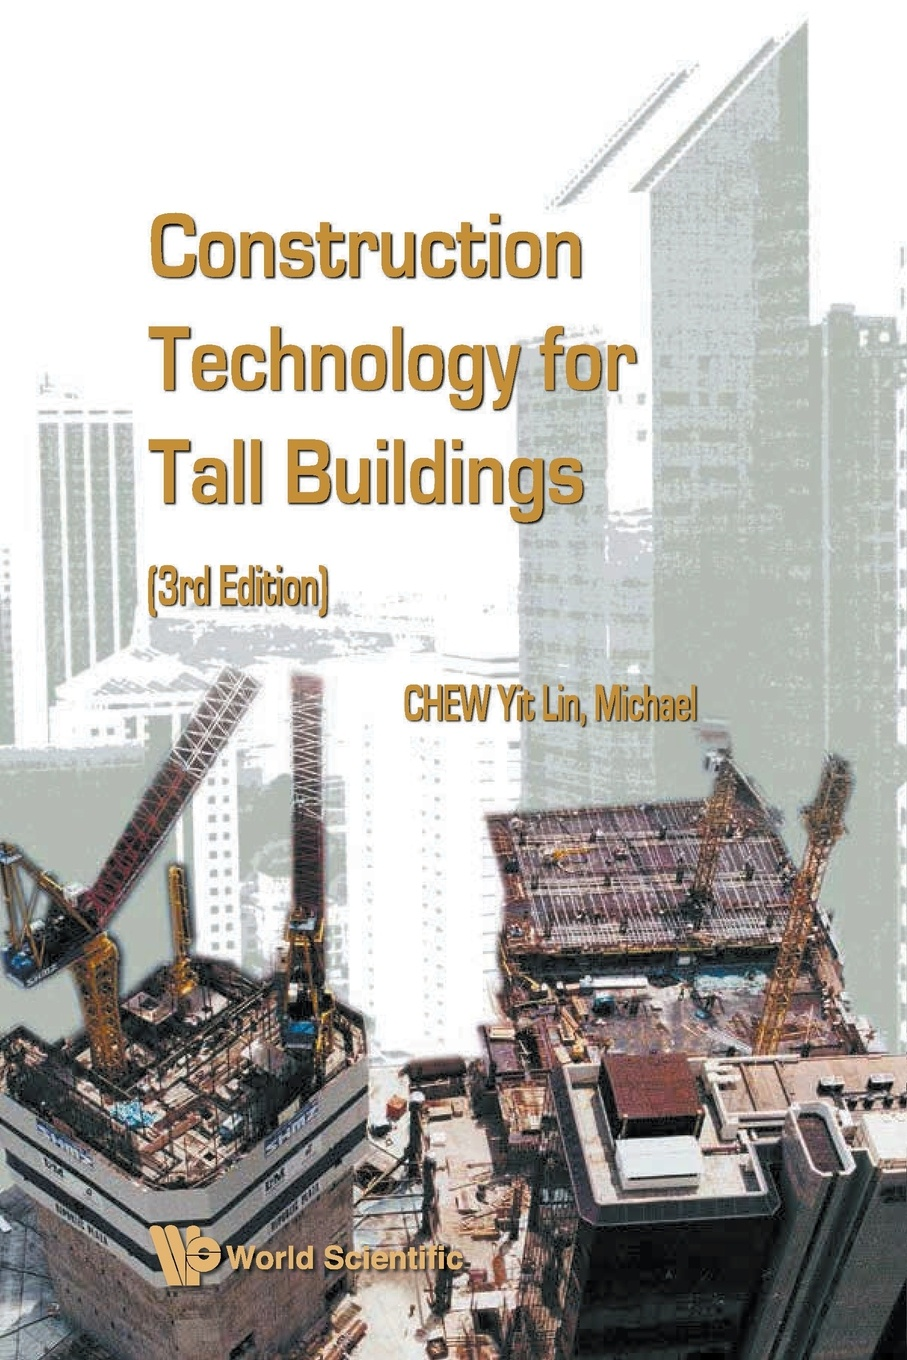 YIT LIN MICHAEL CHEW Construction Technology for Tall Buildings. 3rd Edition